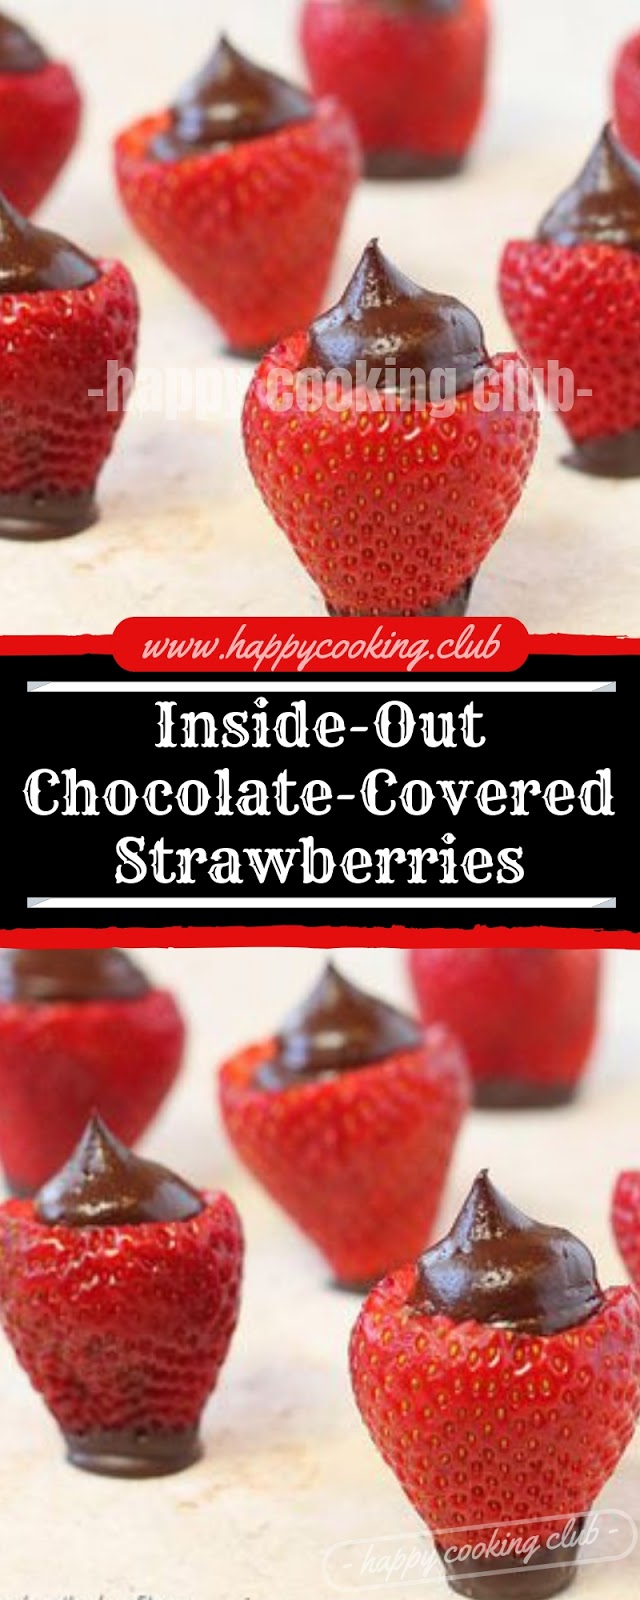 Inside-Out Chocolate-Covered Strawberries